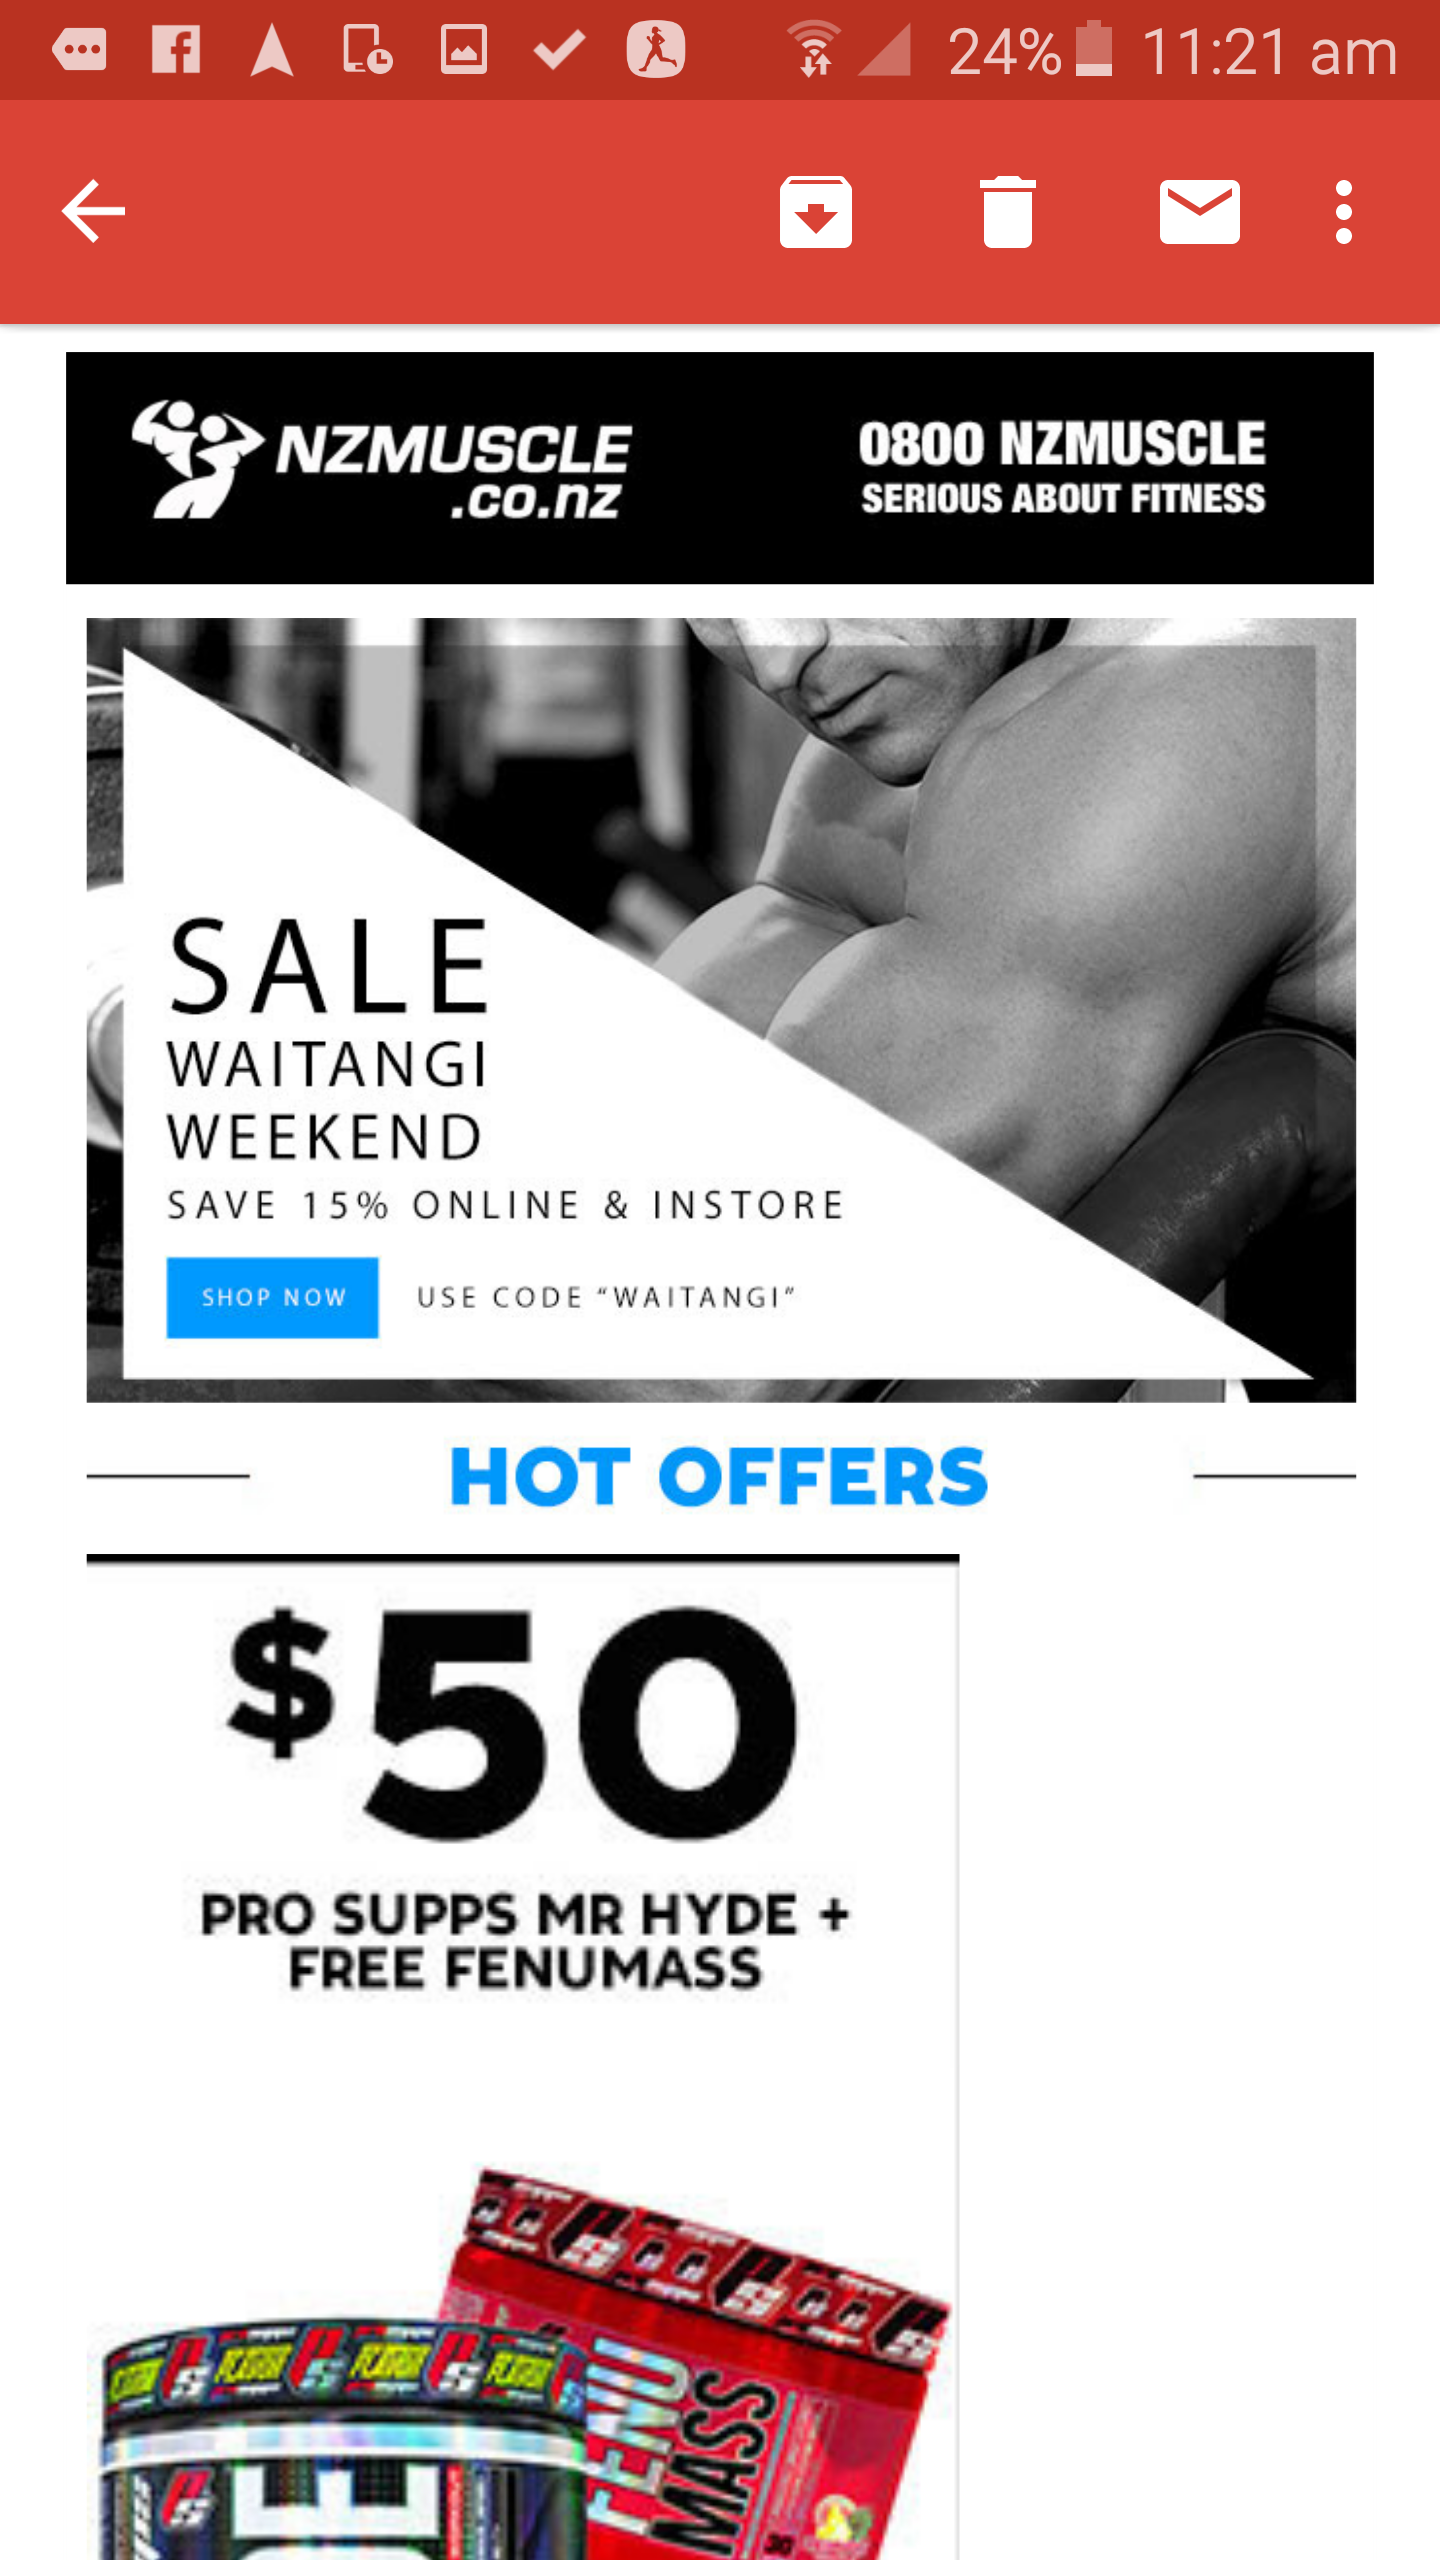 We have 35 twinarchiveju.tk Coupon Codes as of December Grab a free coupons and save money. The Latest Deal is Save 5% Off @ New Zealand Muscle Coupon Codes.